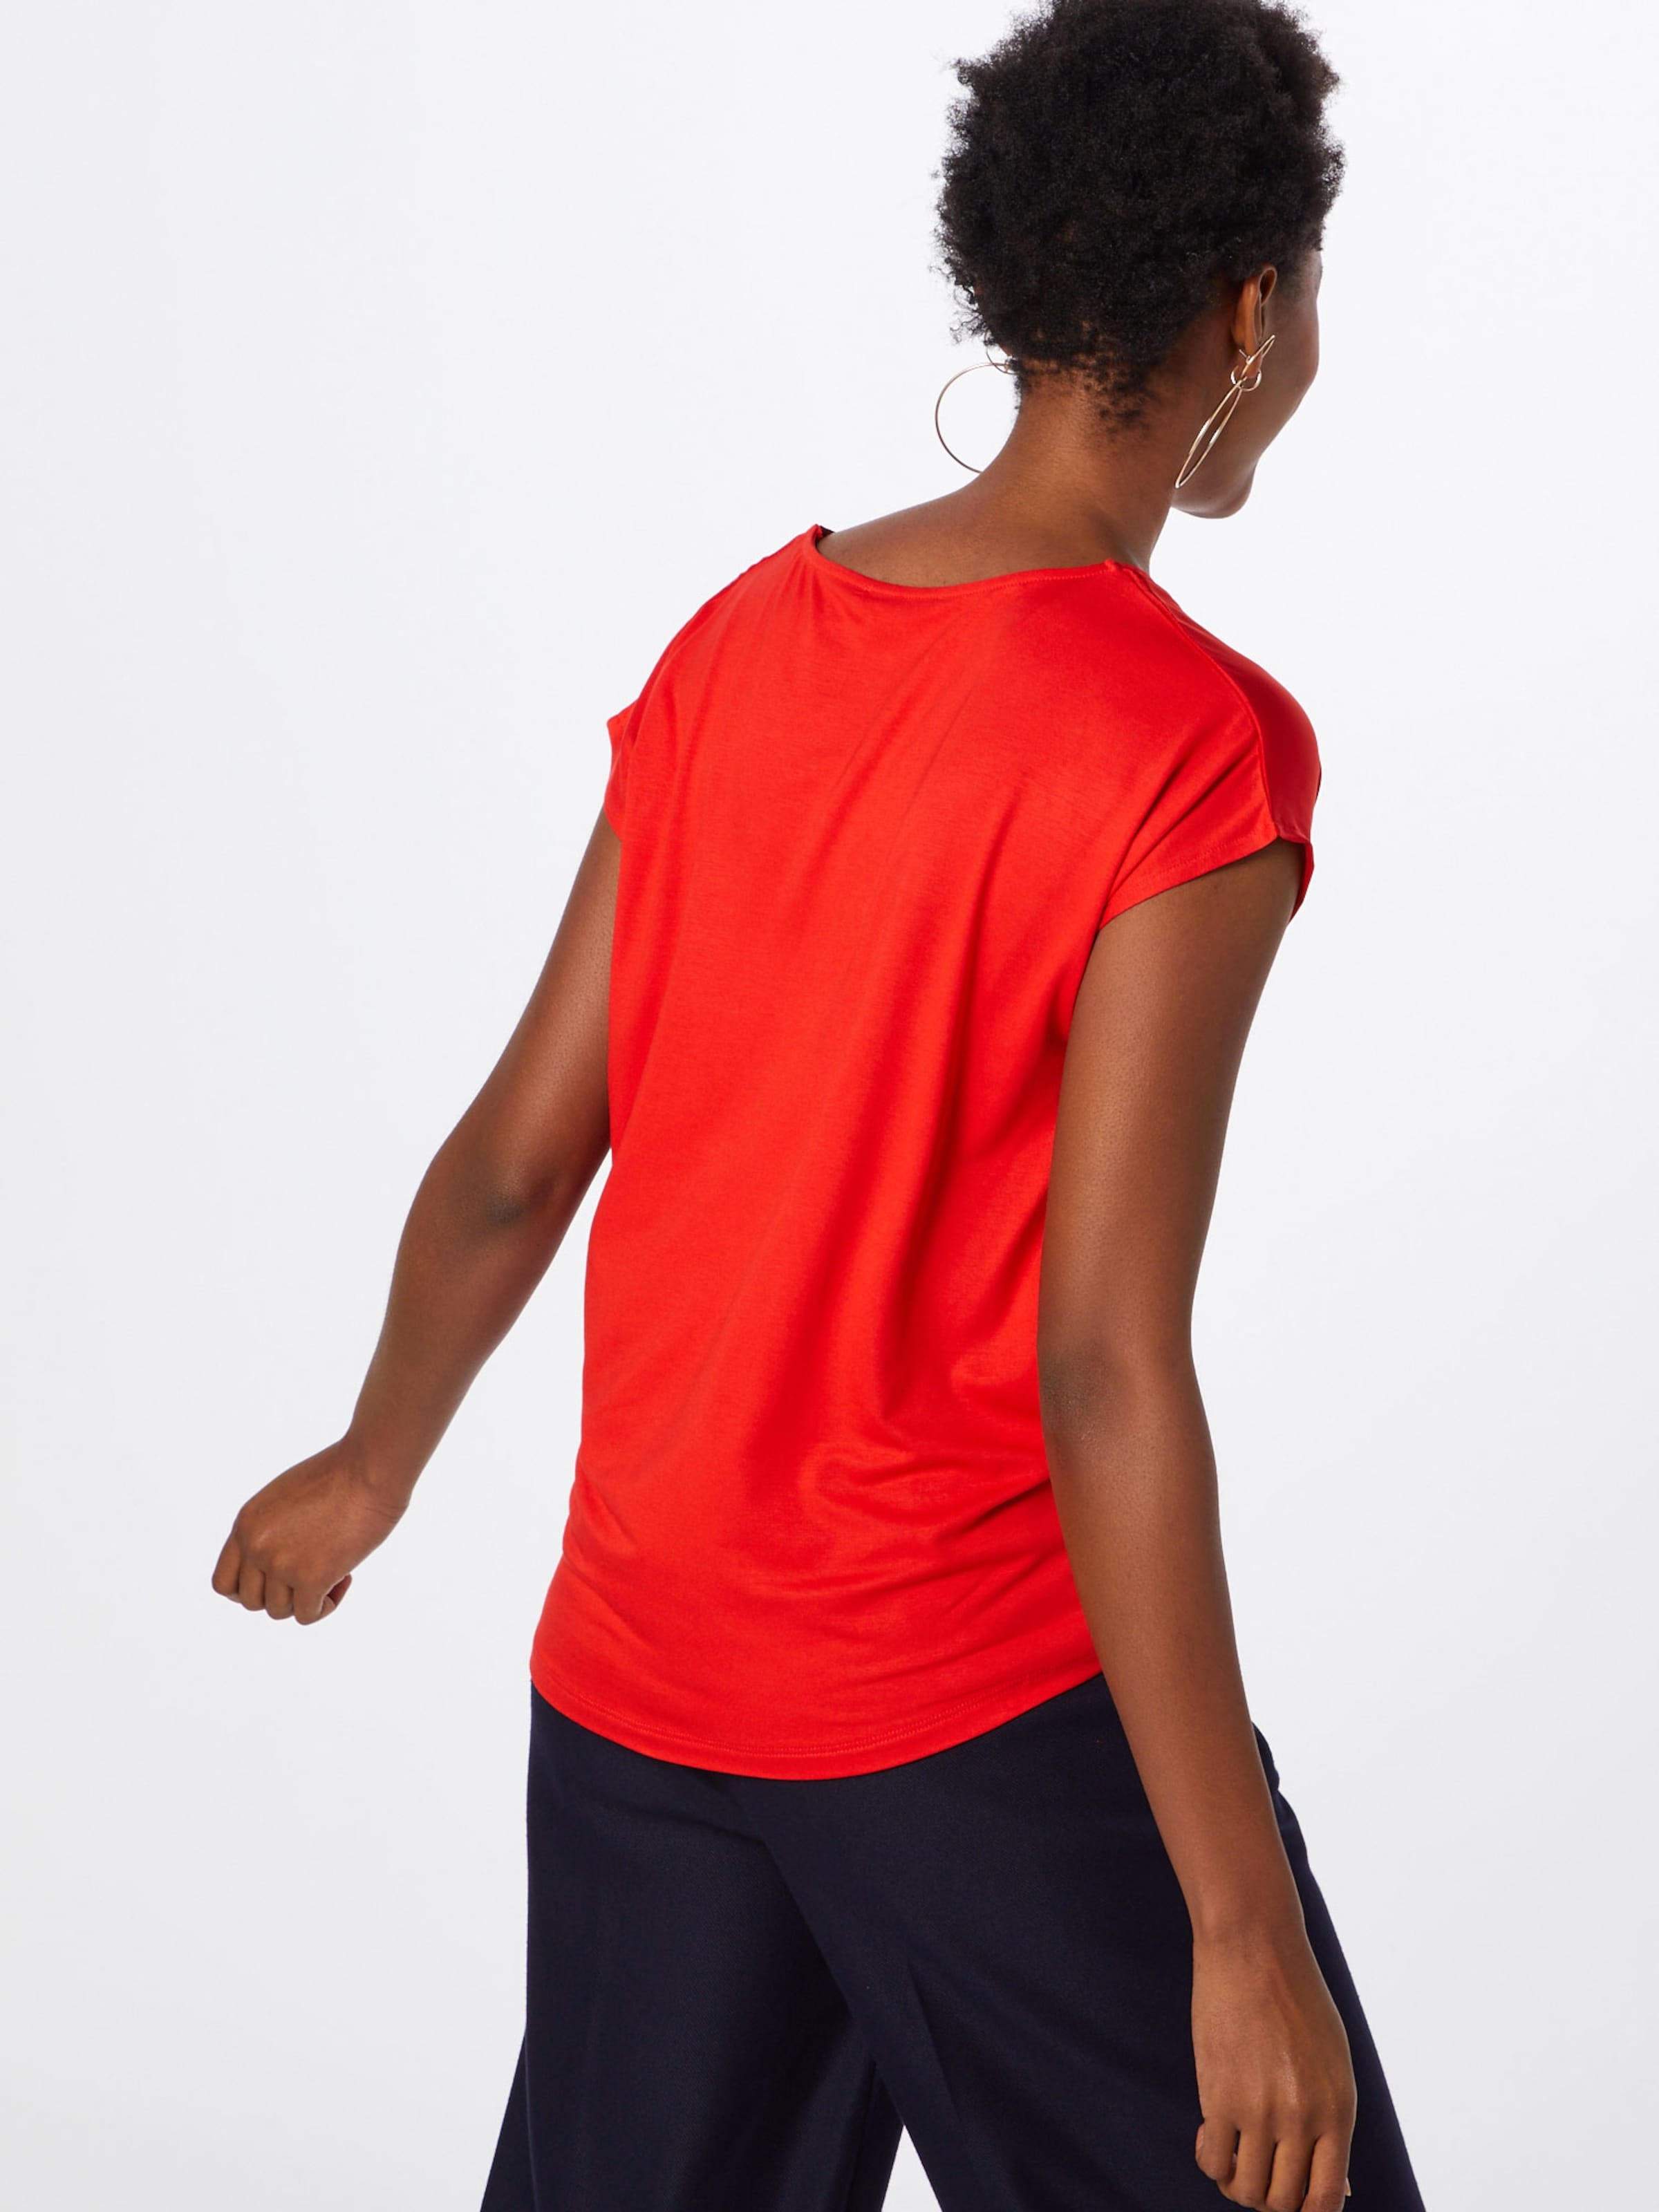 Rouge Moreamp; T En 'active' Orangé shirt DYH2W9IE